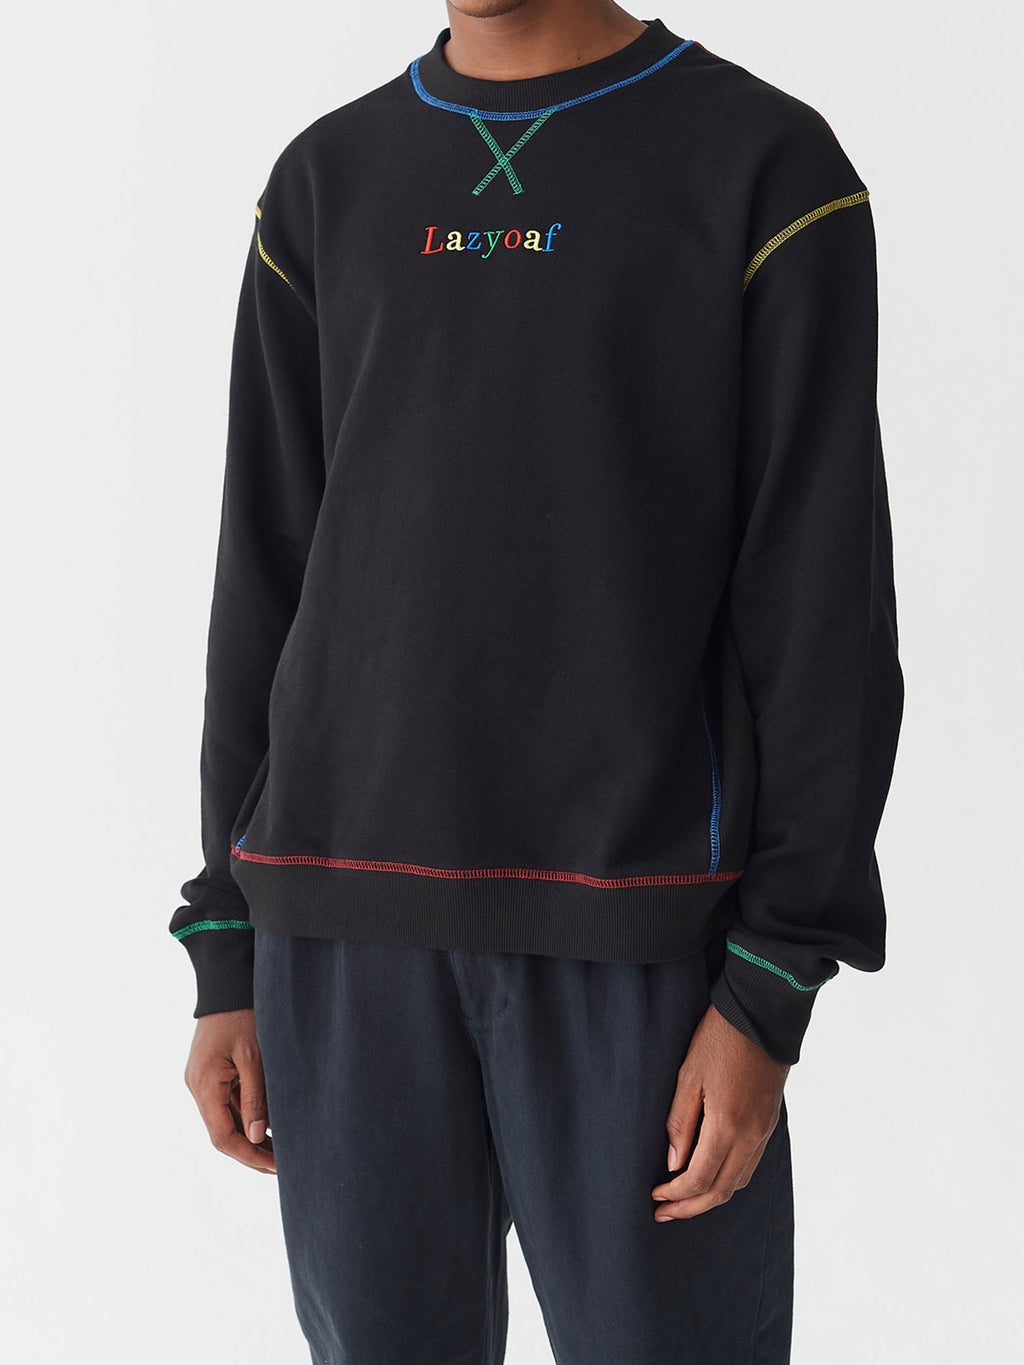 Lazy Oaf Primary Stitch Sweatshirt